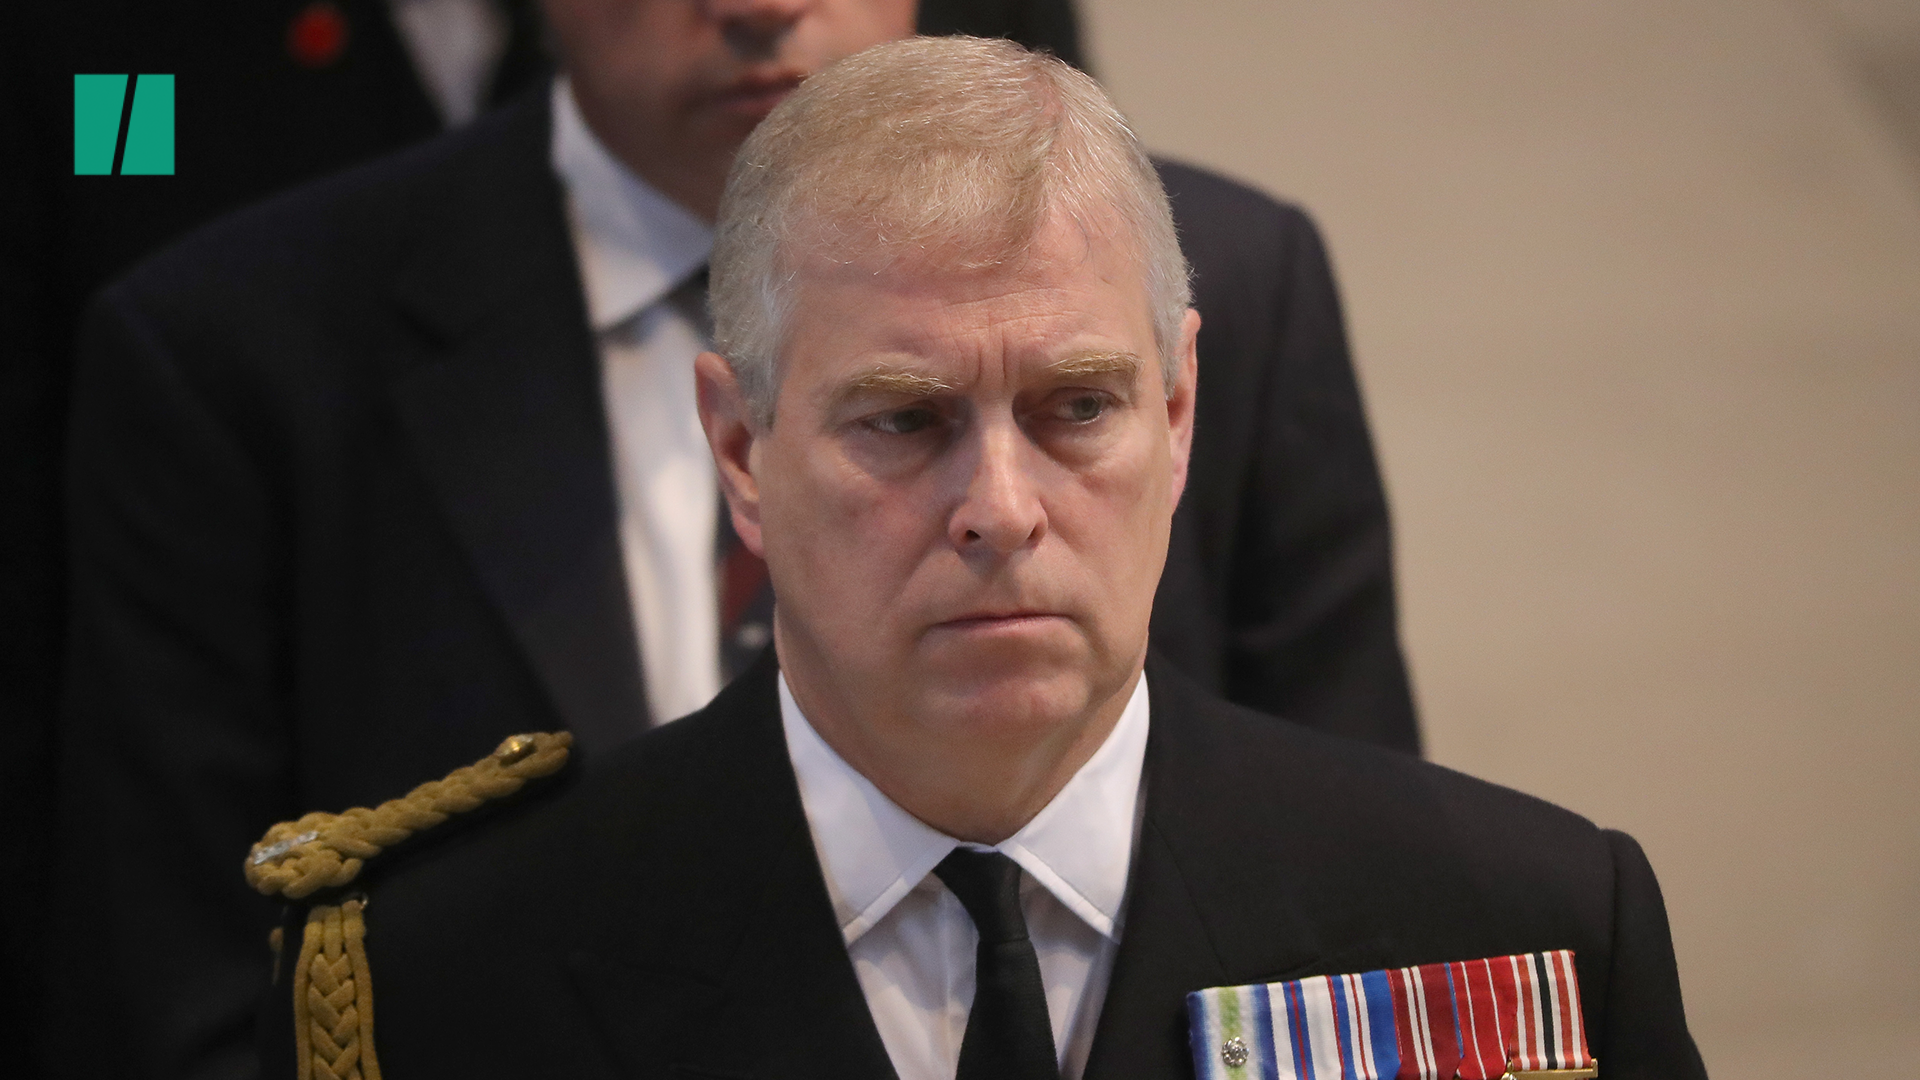 Five Questions You Might Be Asking Right Now About Prince Andrew, Answered